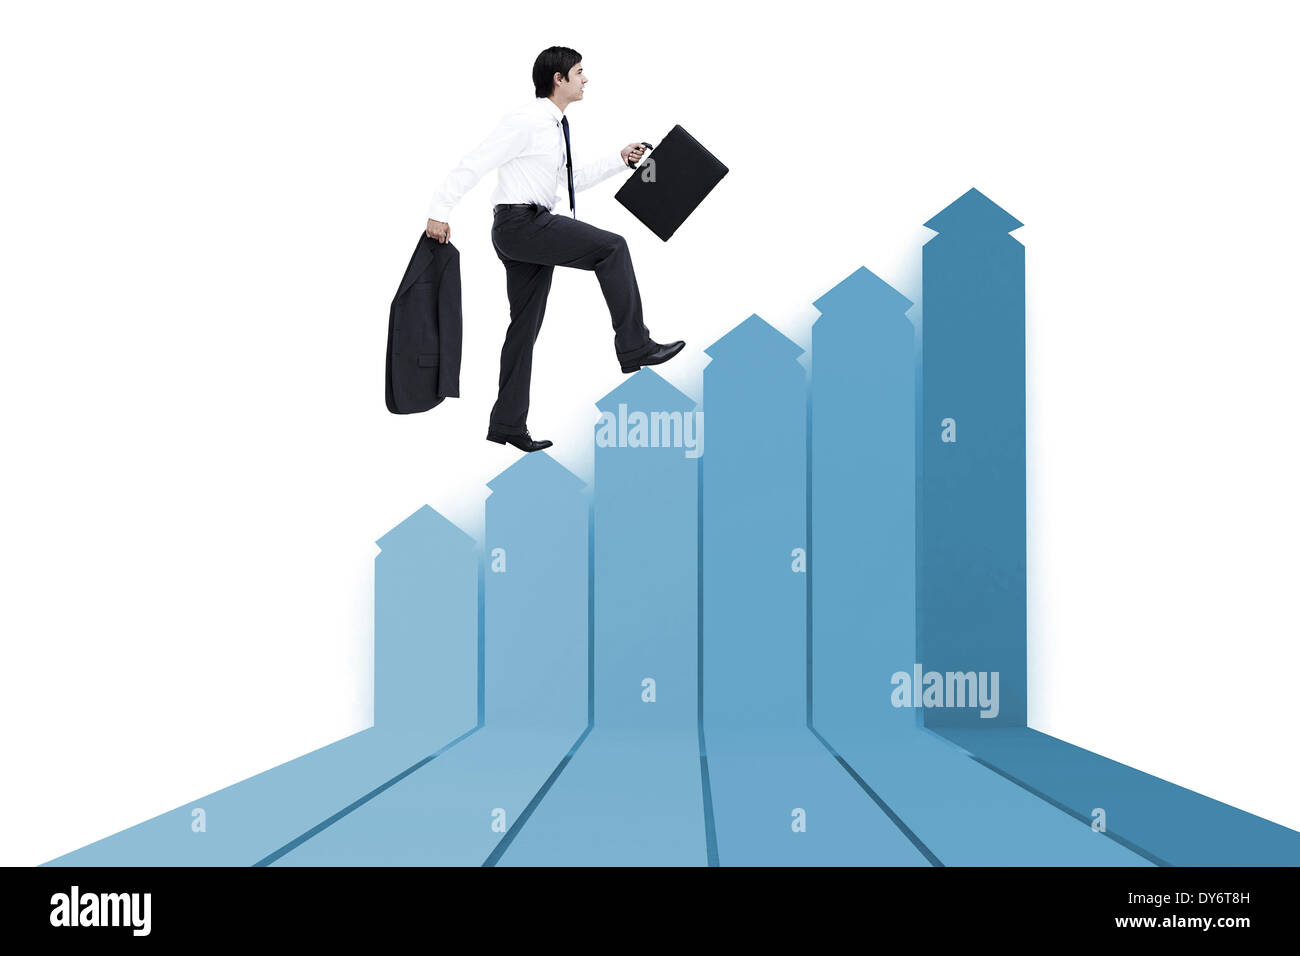 Composite image of side view of walking tradesman with jacket and suitcase - Stock Photo